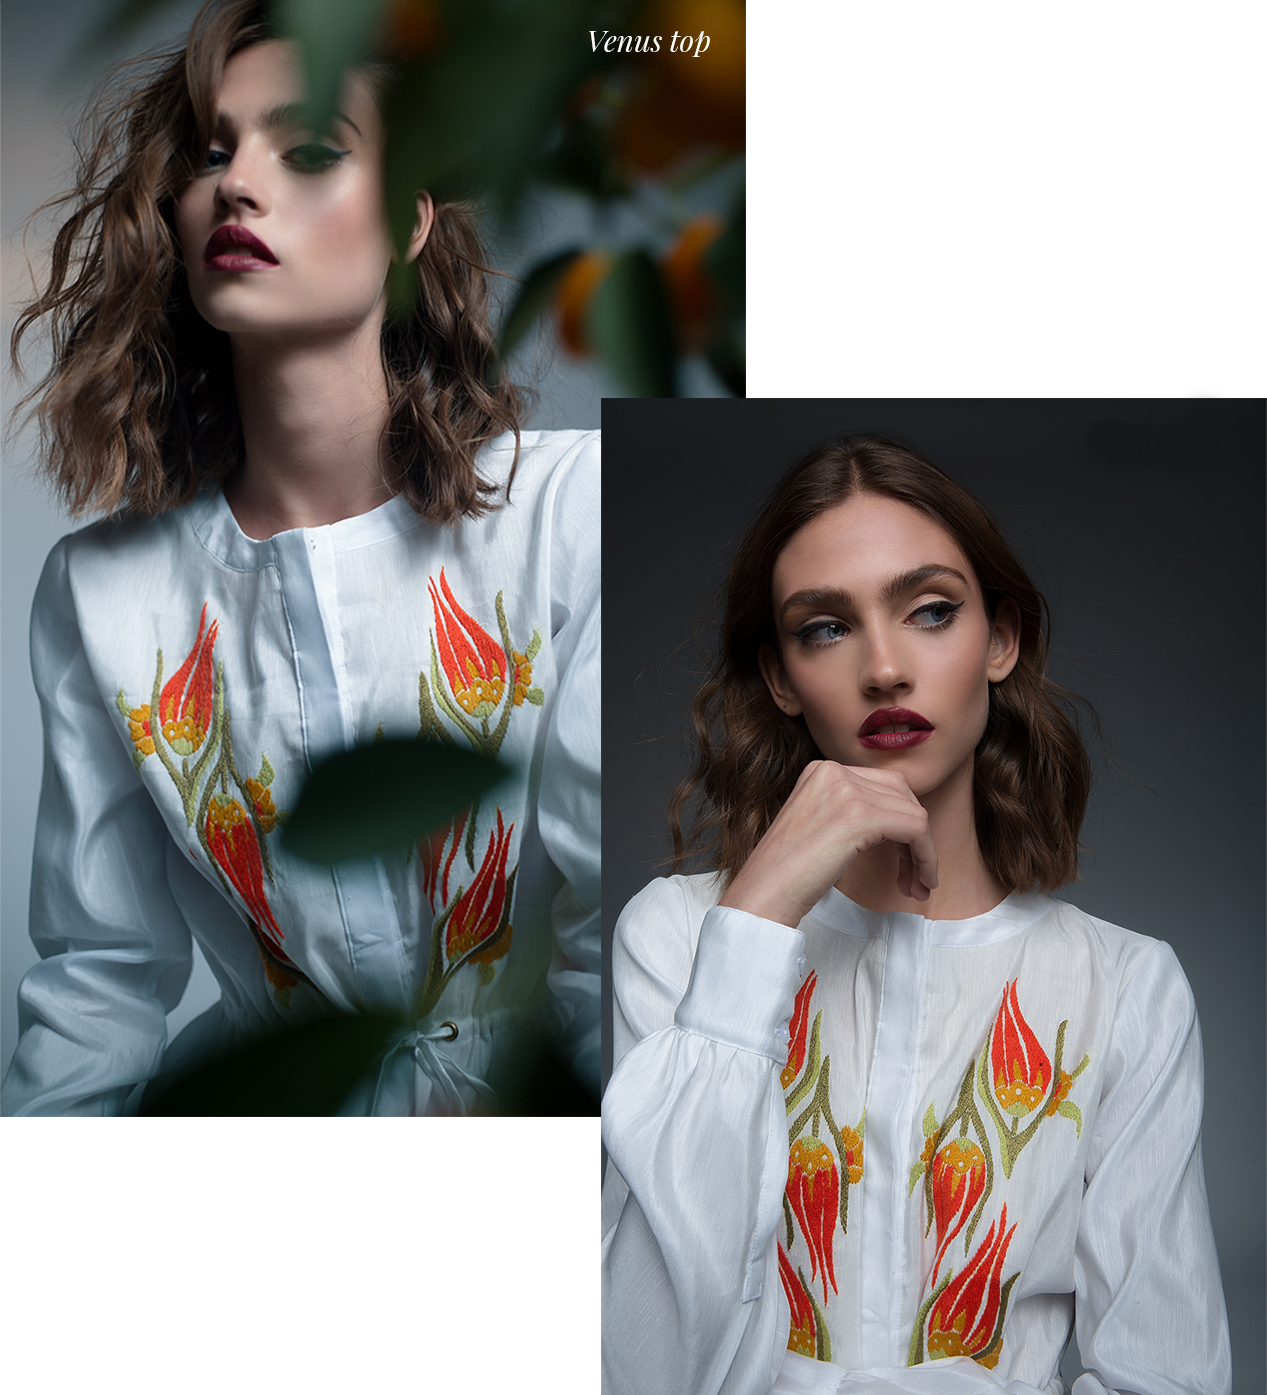 - An ultimate ethical fashion collection for the socially conscious woman. In this collection, we incorporate modern design with beautiful handmade embroidery and up-cycled fabric.